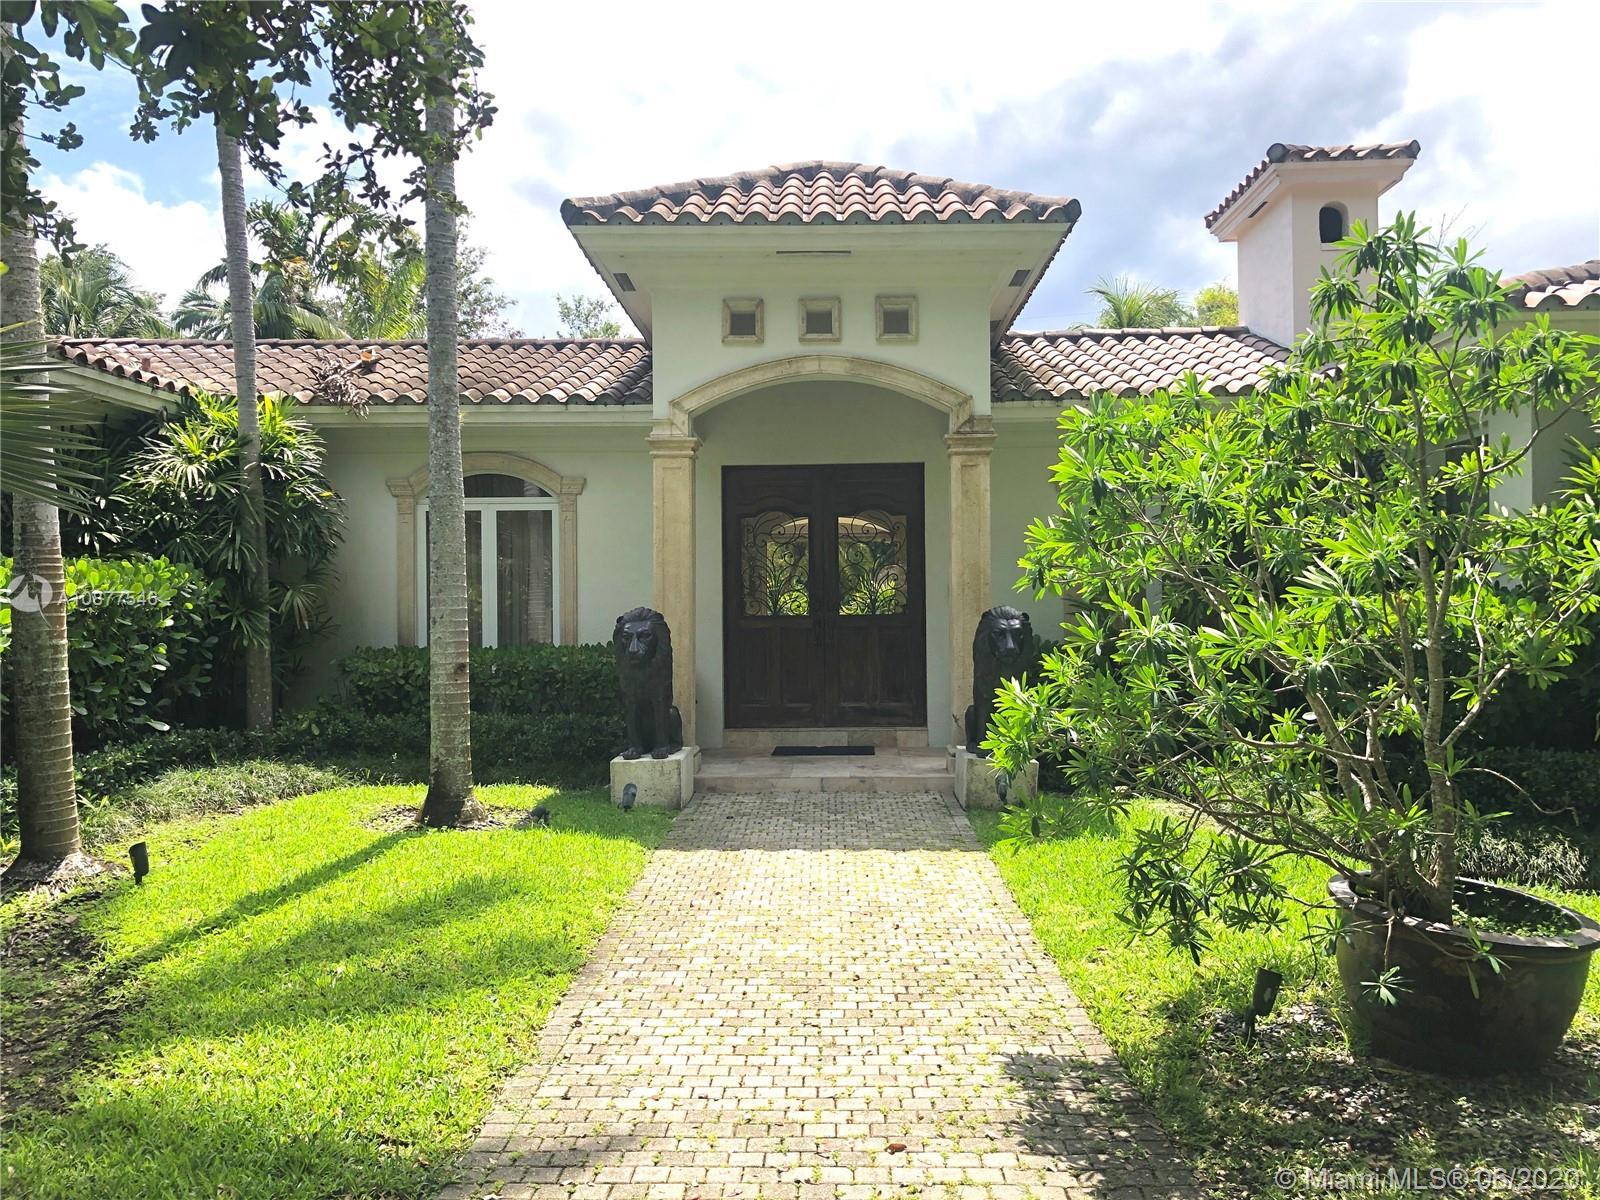 Beautiful gated home in the heart of south miami with 5 bd/ 4.5 baths, double garage, wine closet, family room, TV room, housekeeper room, working generator, saturnia marble and wood floors. Gas oven along with stainless steel appliances. Fabulous pool/patio area.